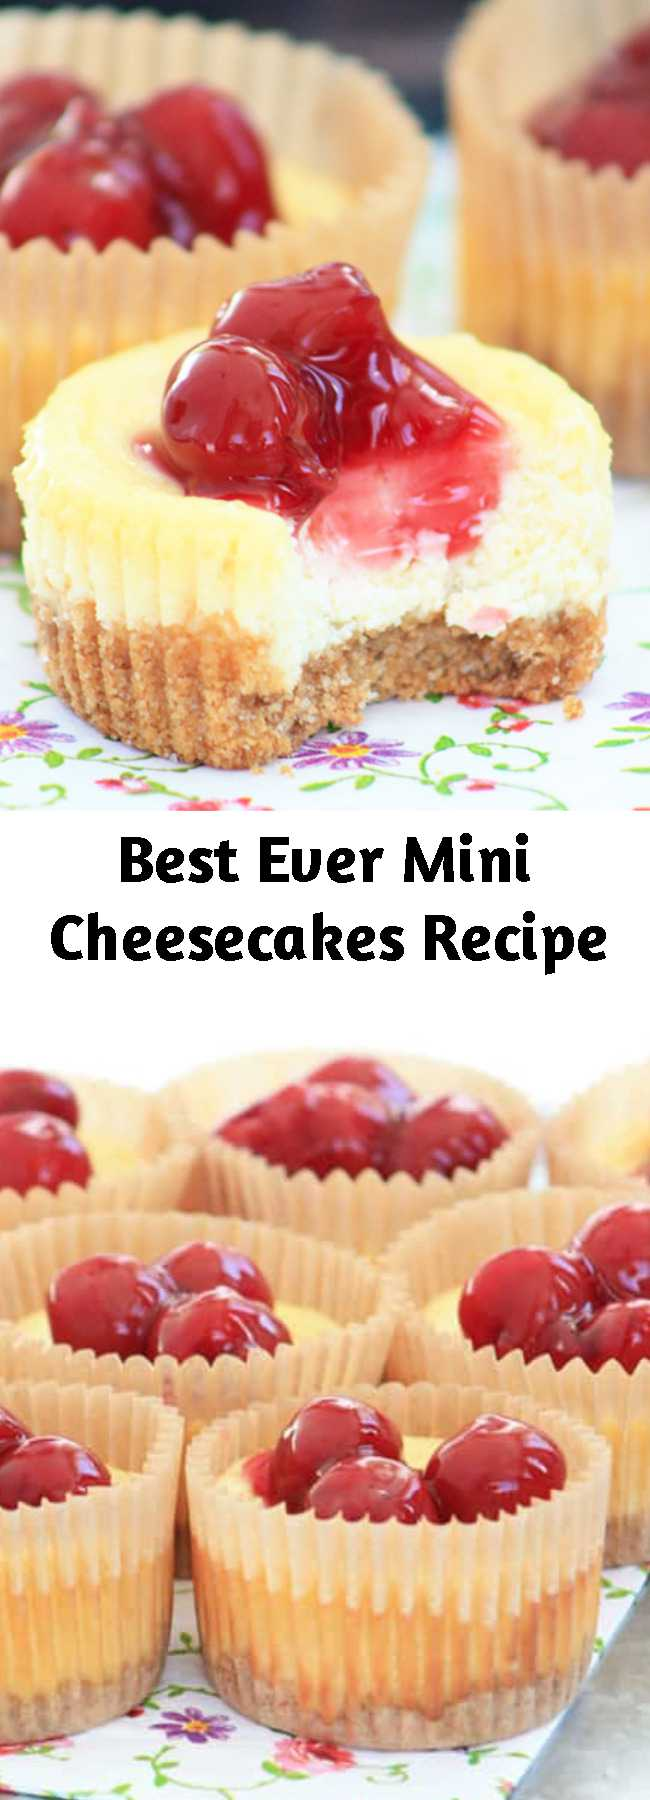 Best Ever Mini Cheesecakes Recipe - A mini cheesecake recipe using graham cracker crumbs, cream cheese, and cherry pie filling. My kids beg me to make these again and again!